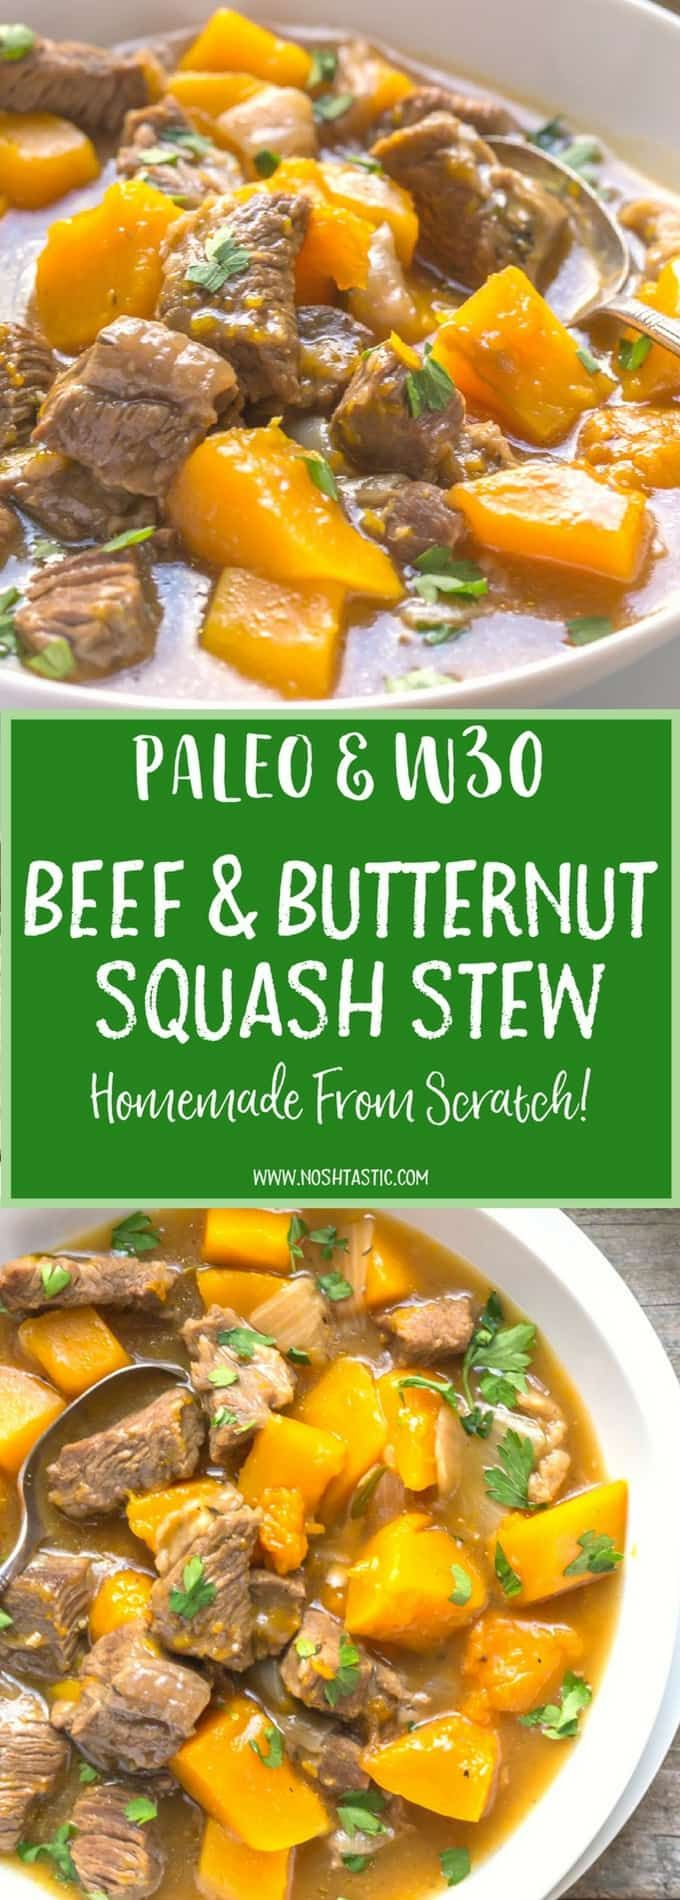 Delicious Healthy Beef and Butternut Squash Stew! It's Paleo,Whole30, Gluten Free, Can be made in a slow cooker or crockpot, make it TODAY!